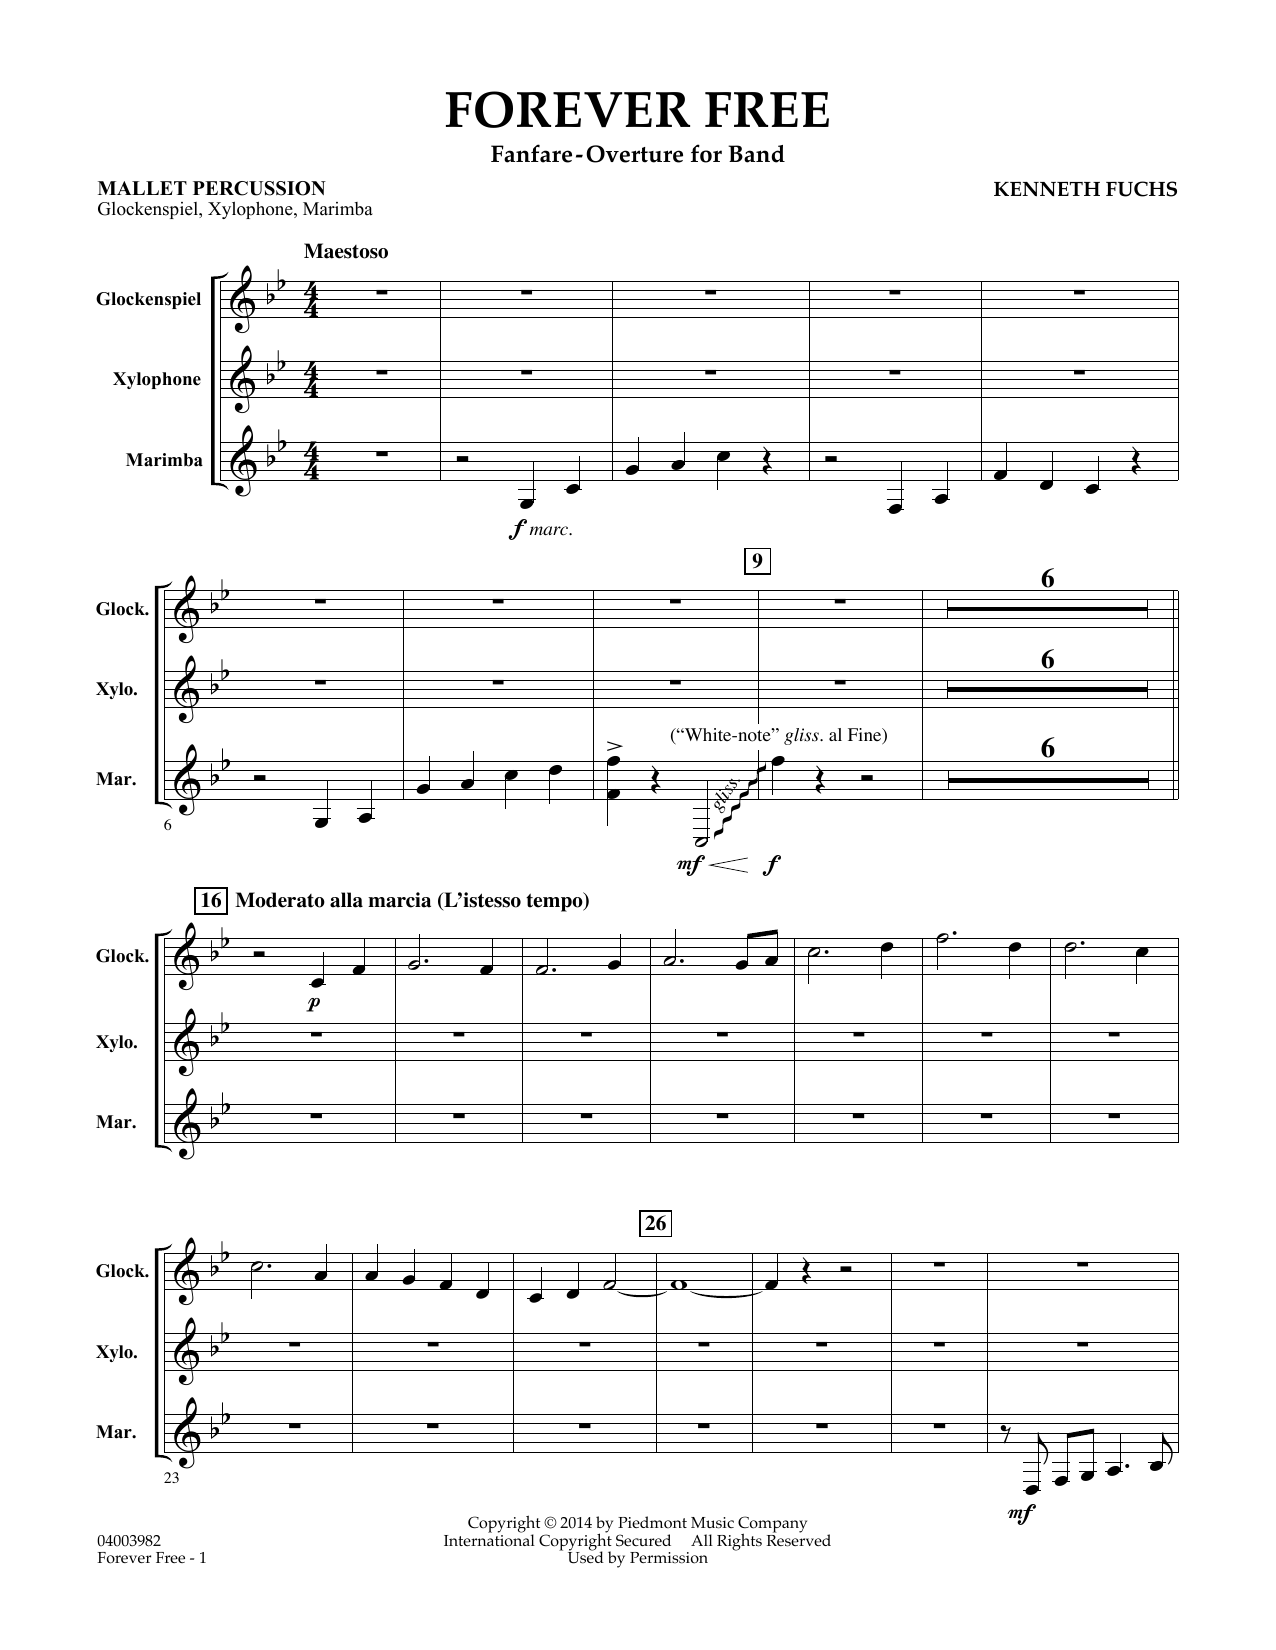 Kenneth Fuchs Forever Free - Mallet Percussion sheet music notes and chords. Download Printable PDF.